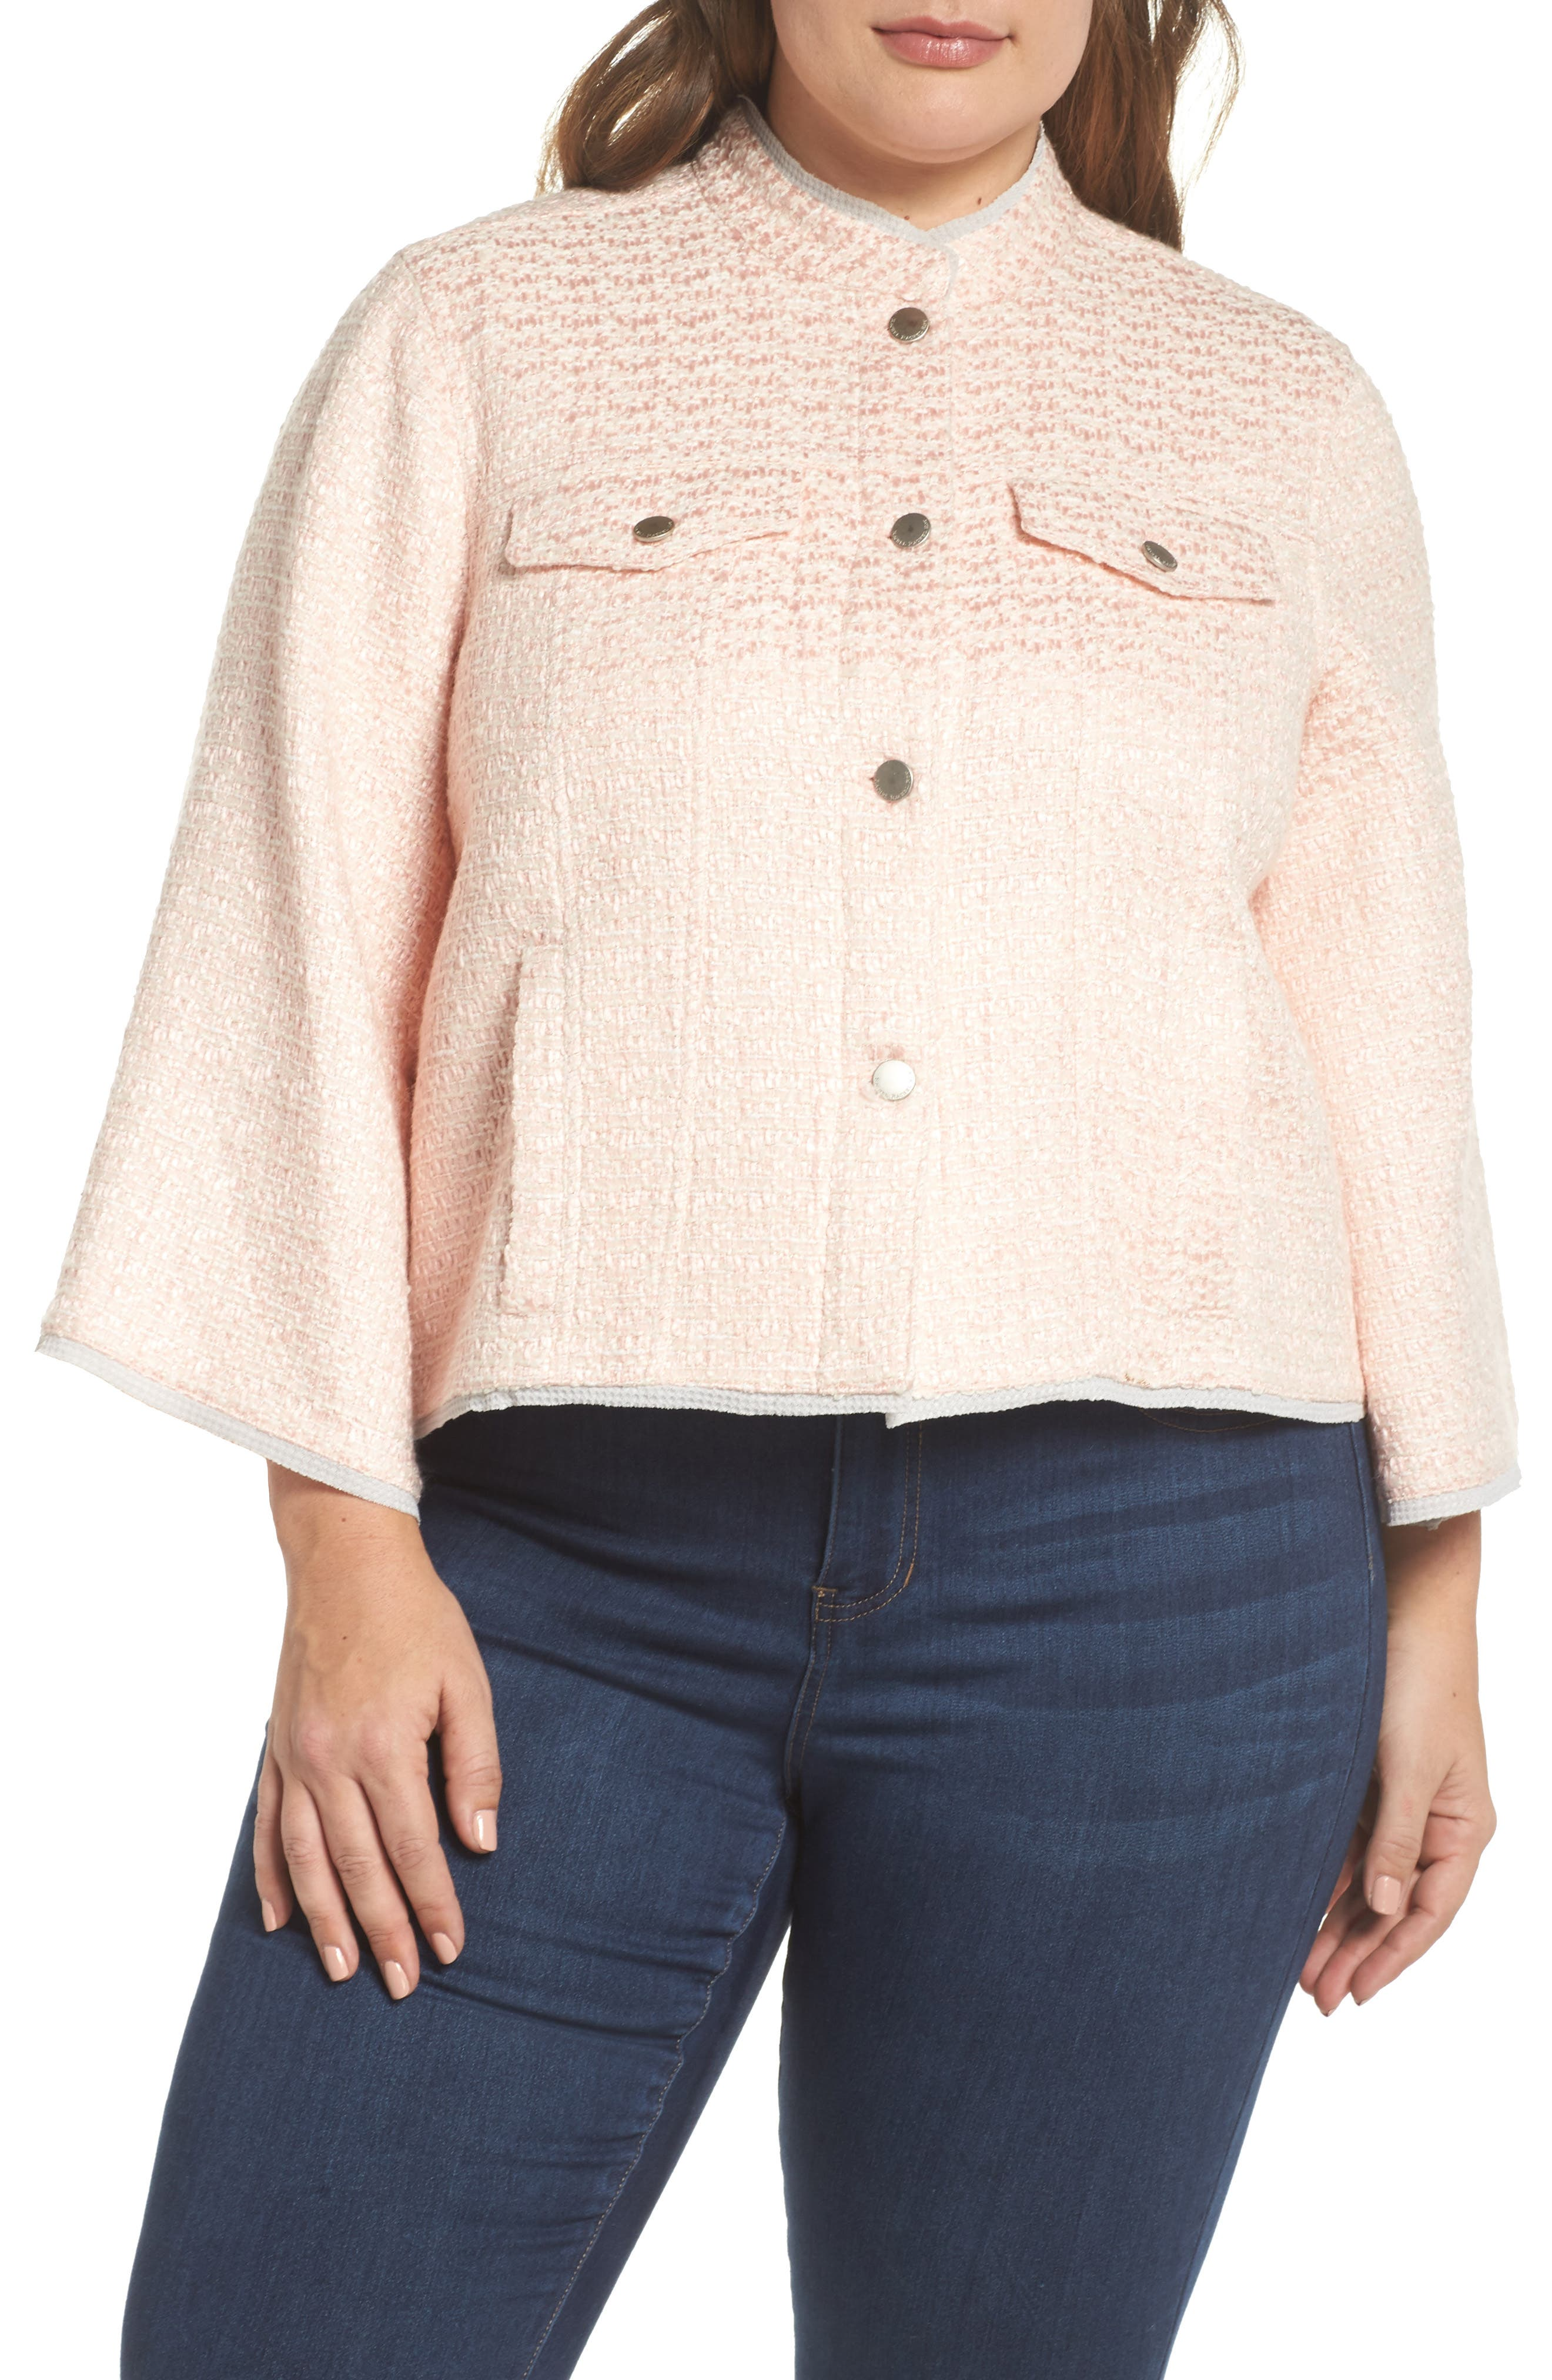 Bell Sleeve Crop Tweed Jacket,                             Alternate thumbnail 4, color,                             Ice Pink Combo